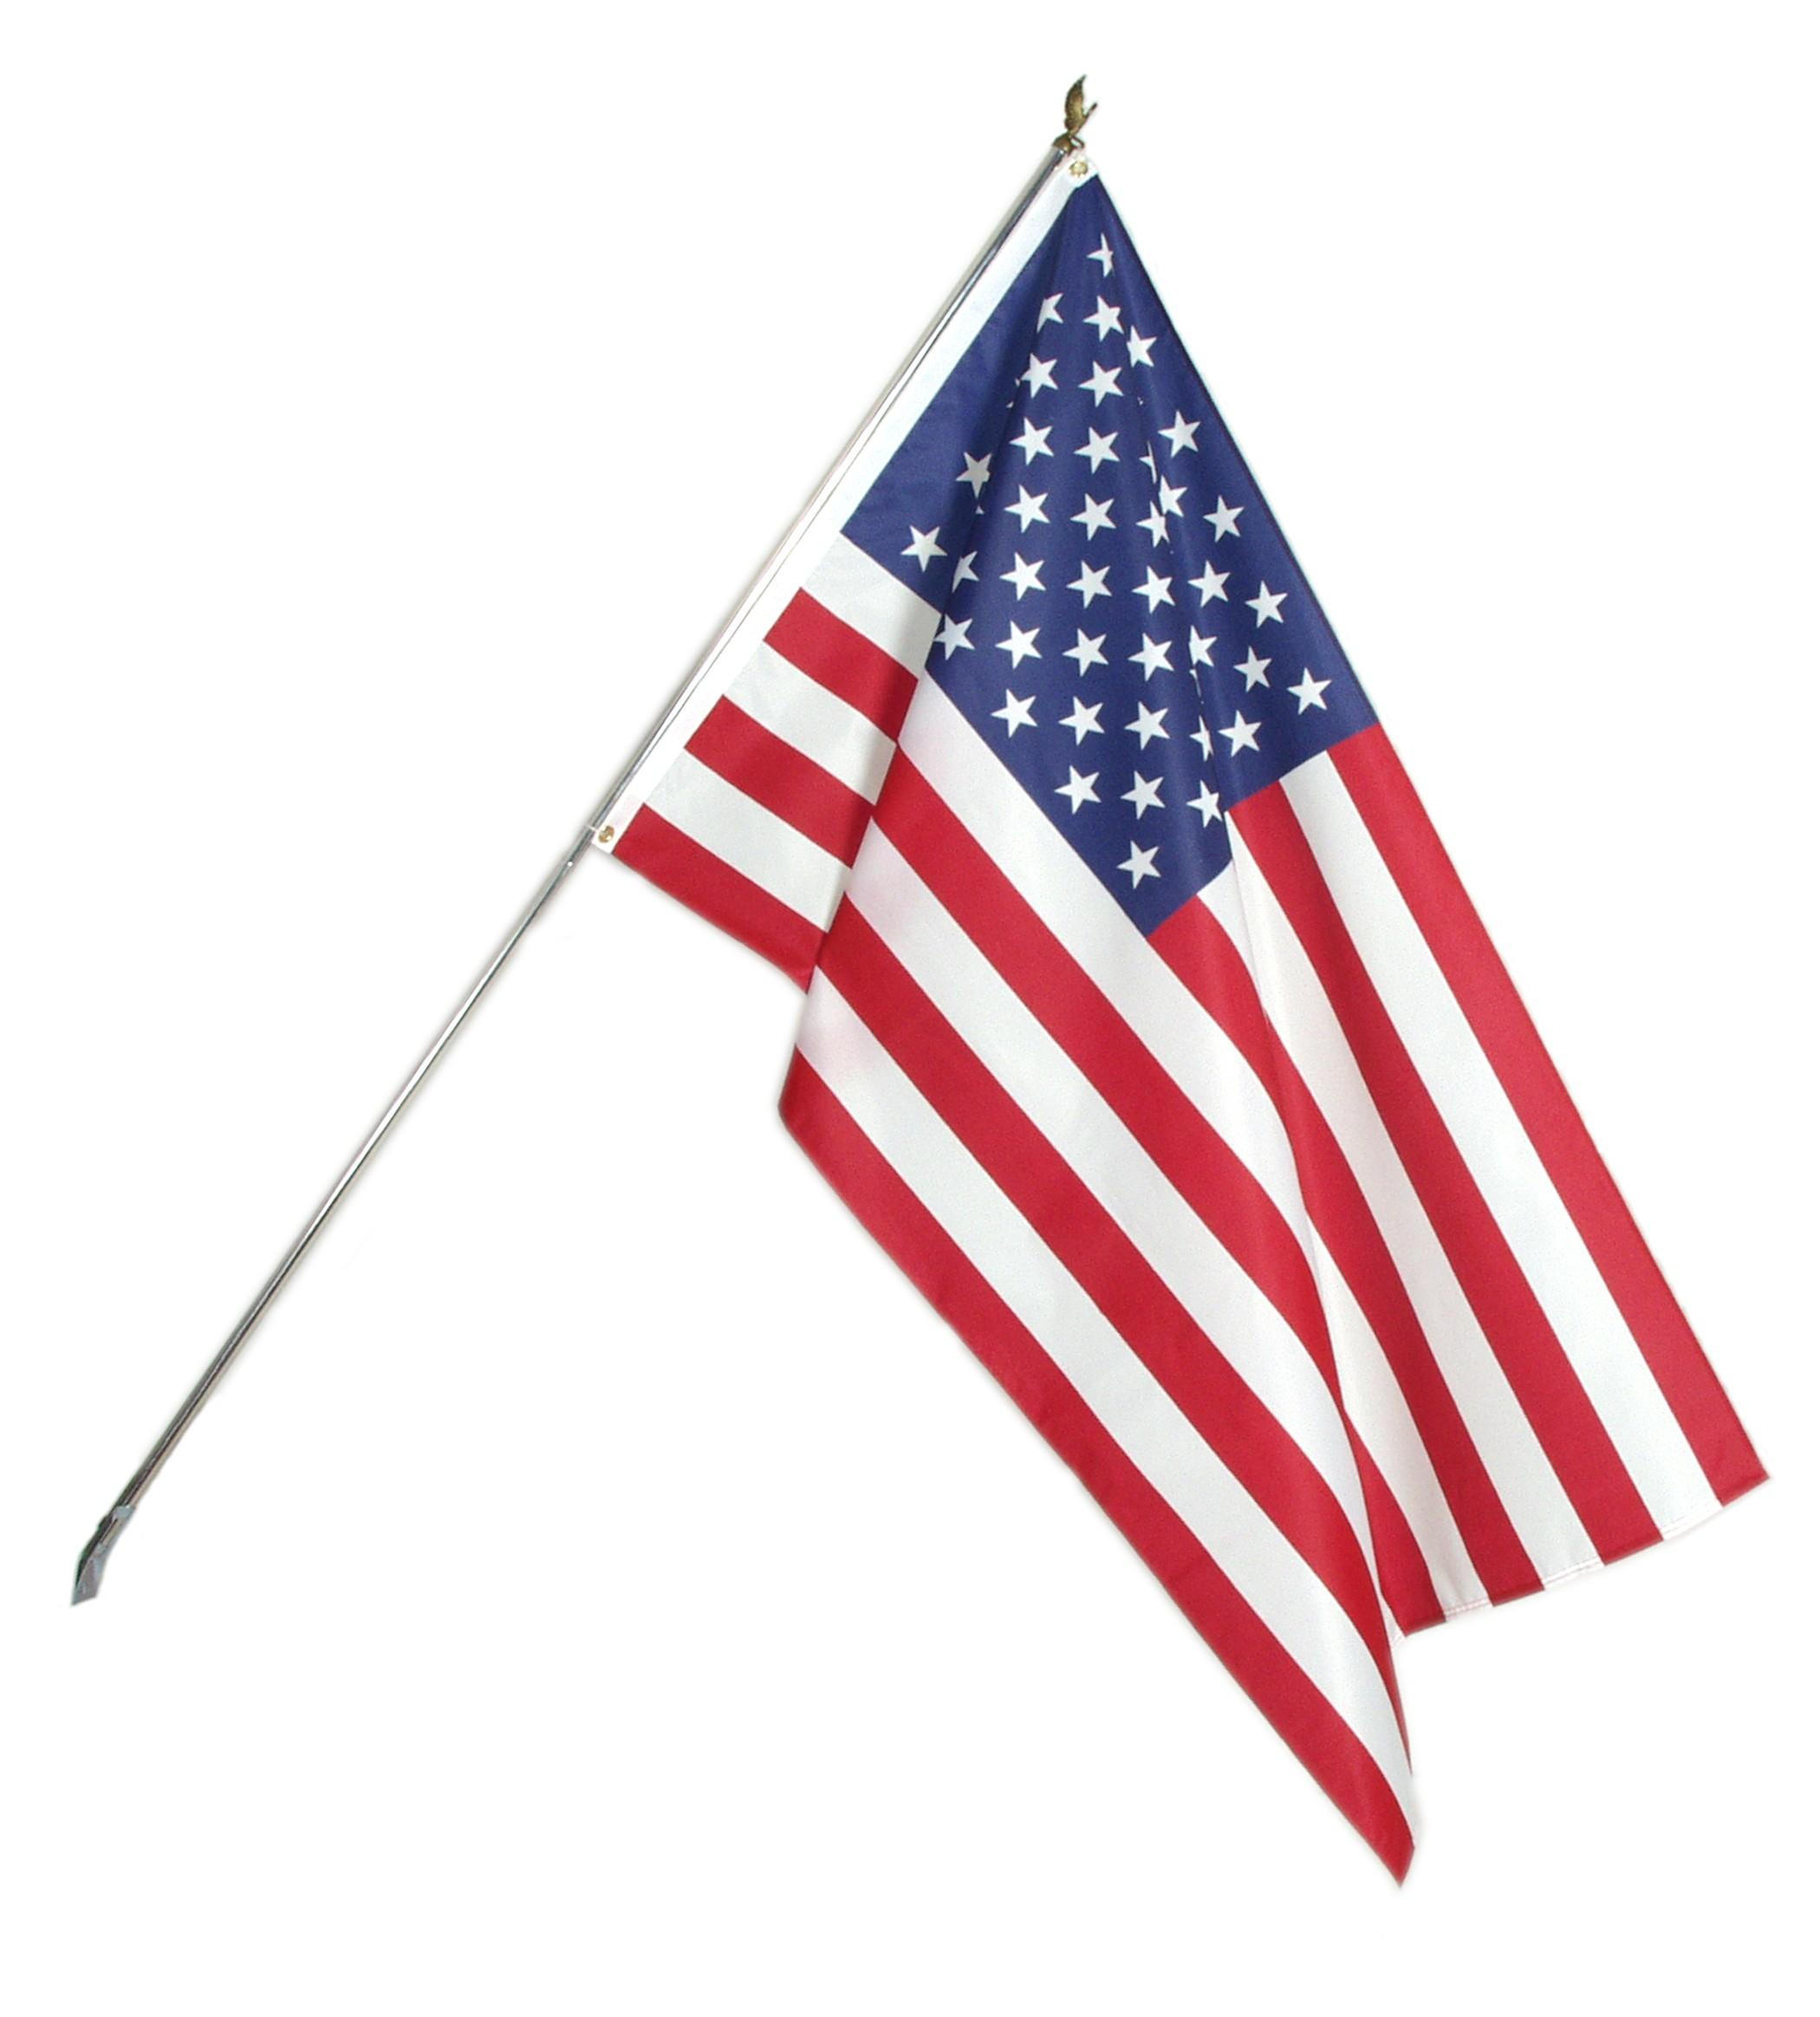 United states flag pole clipart svg transparent library Us Flags Images | Free download best Us Flags Images on ... svg transparent library